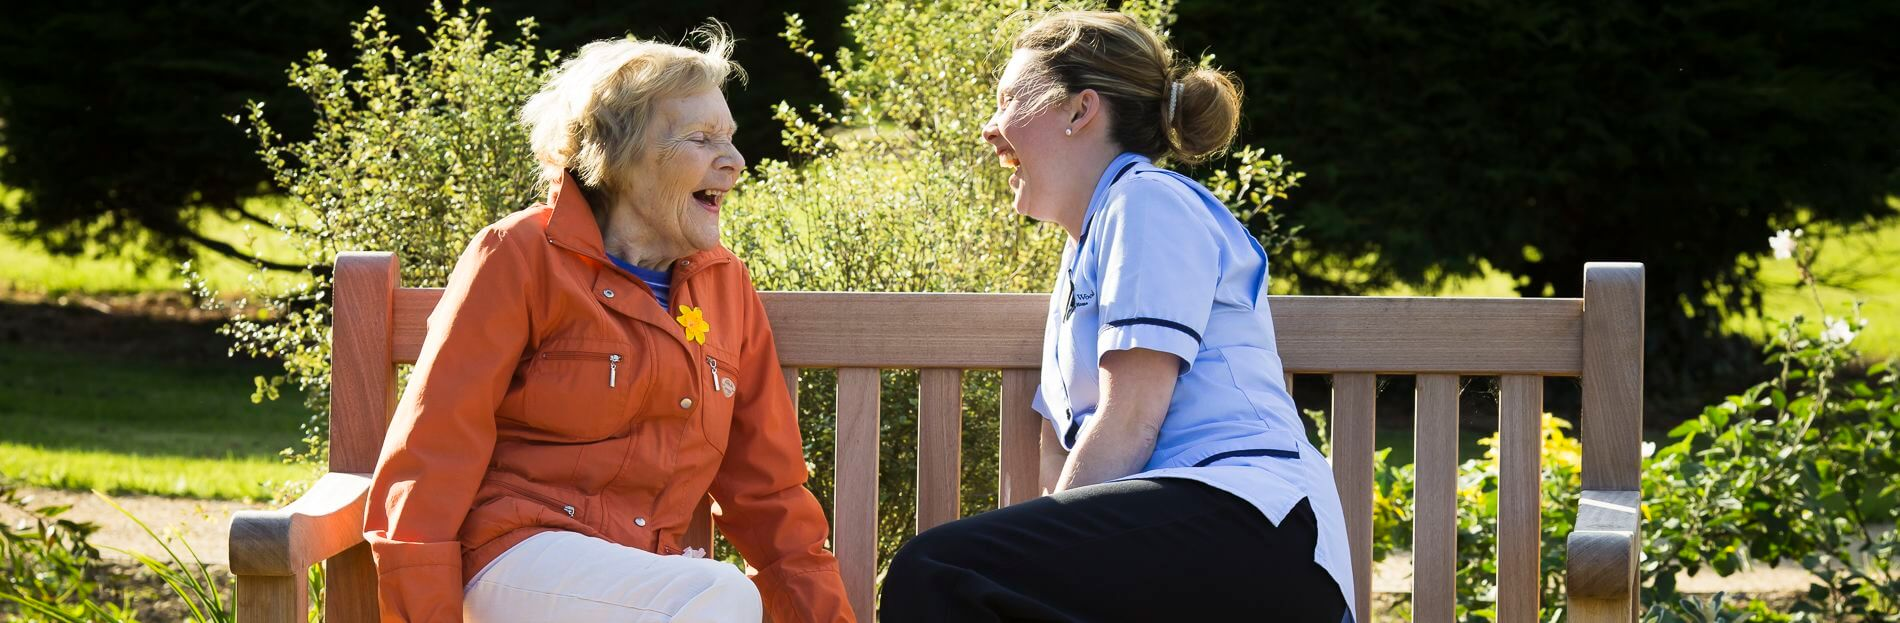 Care Worker laughing with resident in garden